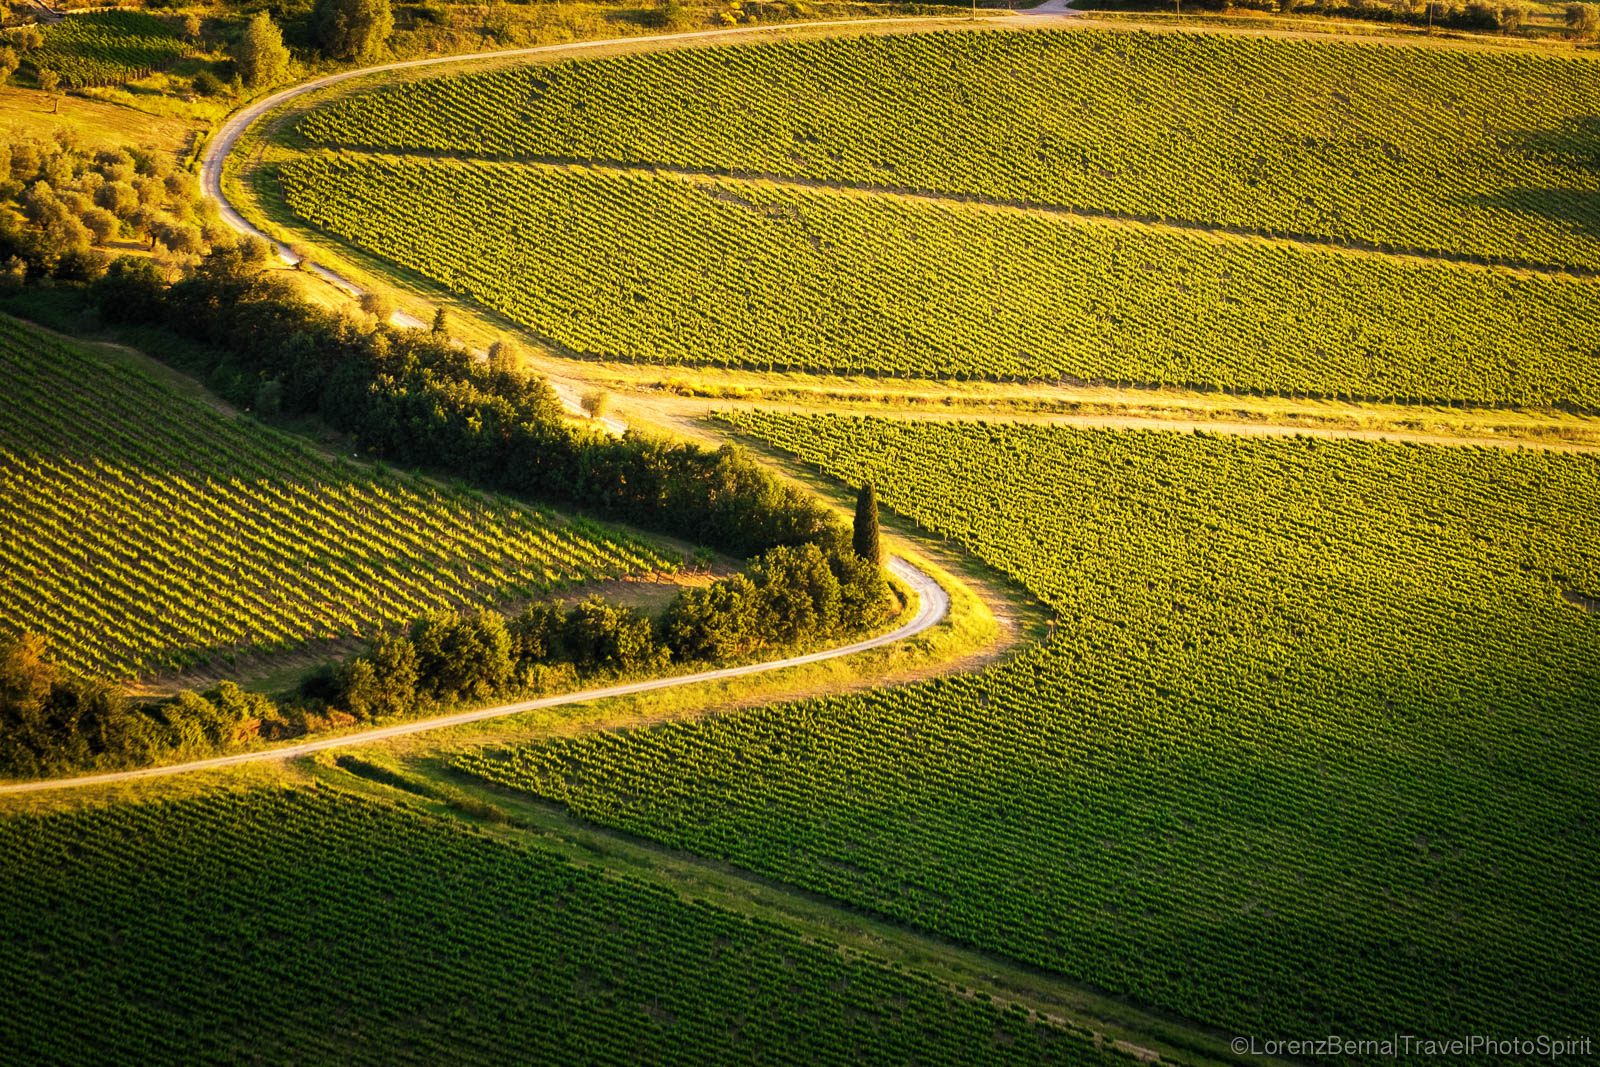 Vineyards lines and shapes in Tuscany, Italy